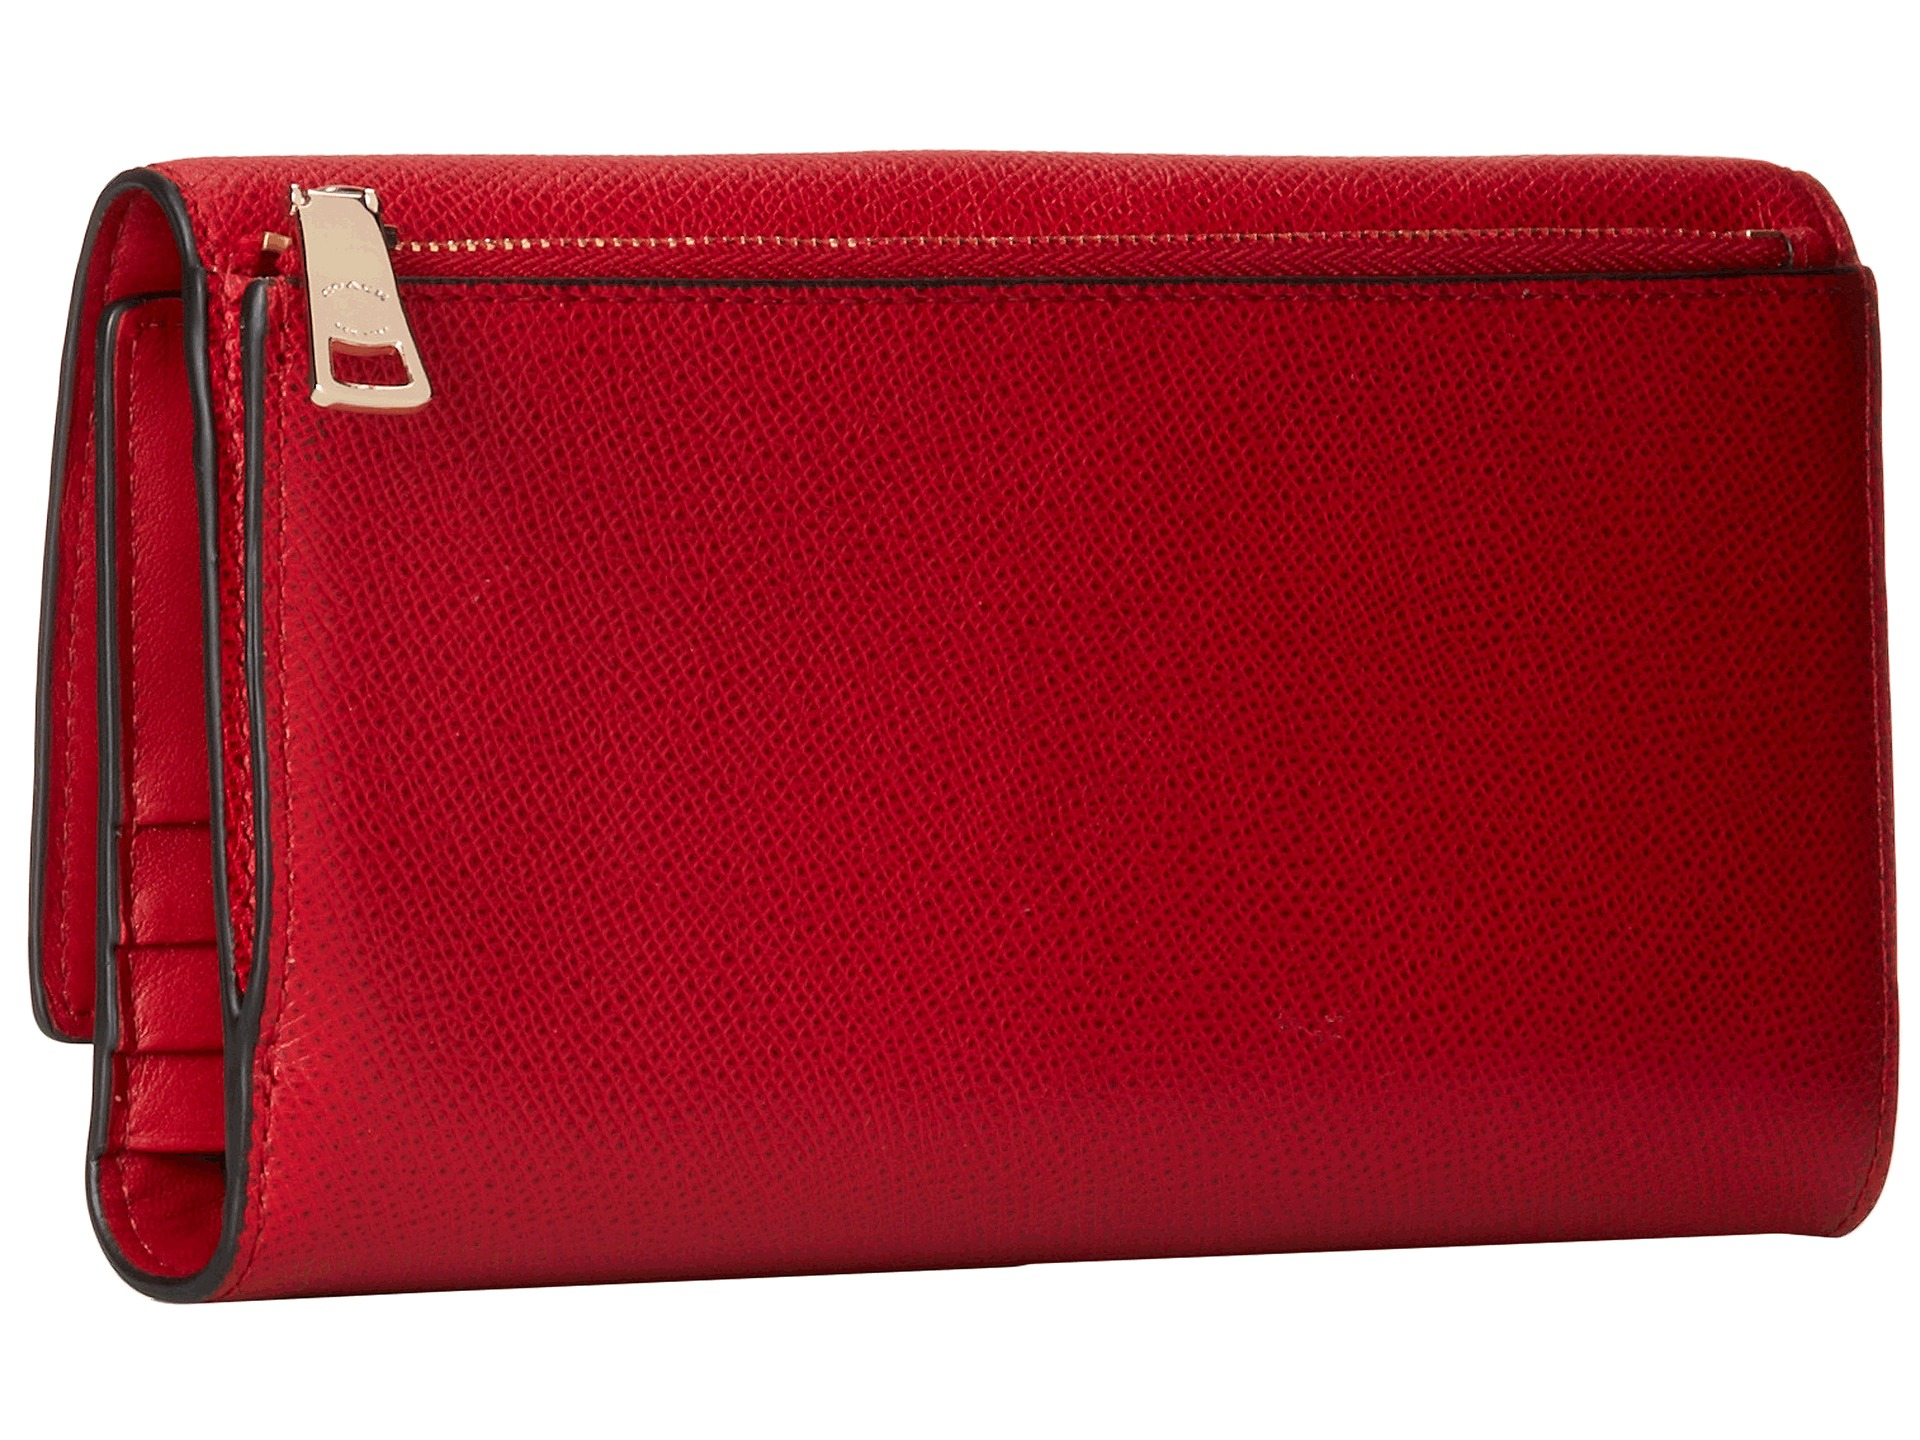 Coach Womens Wallets Amazon Com